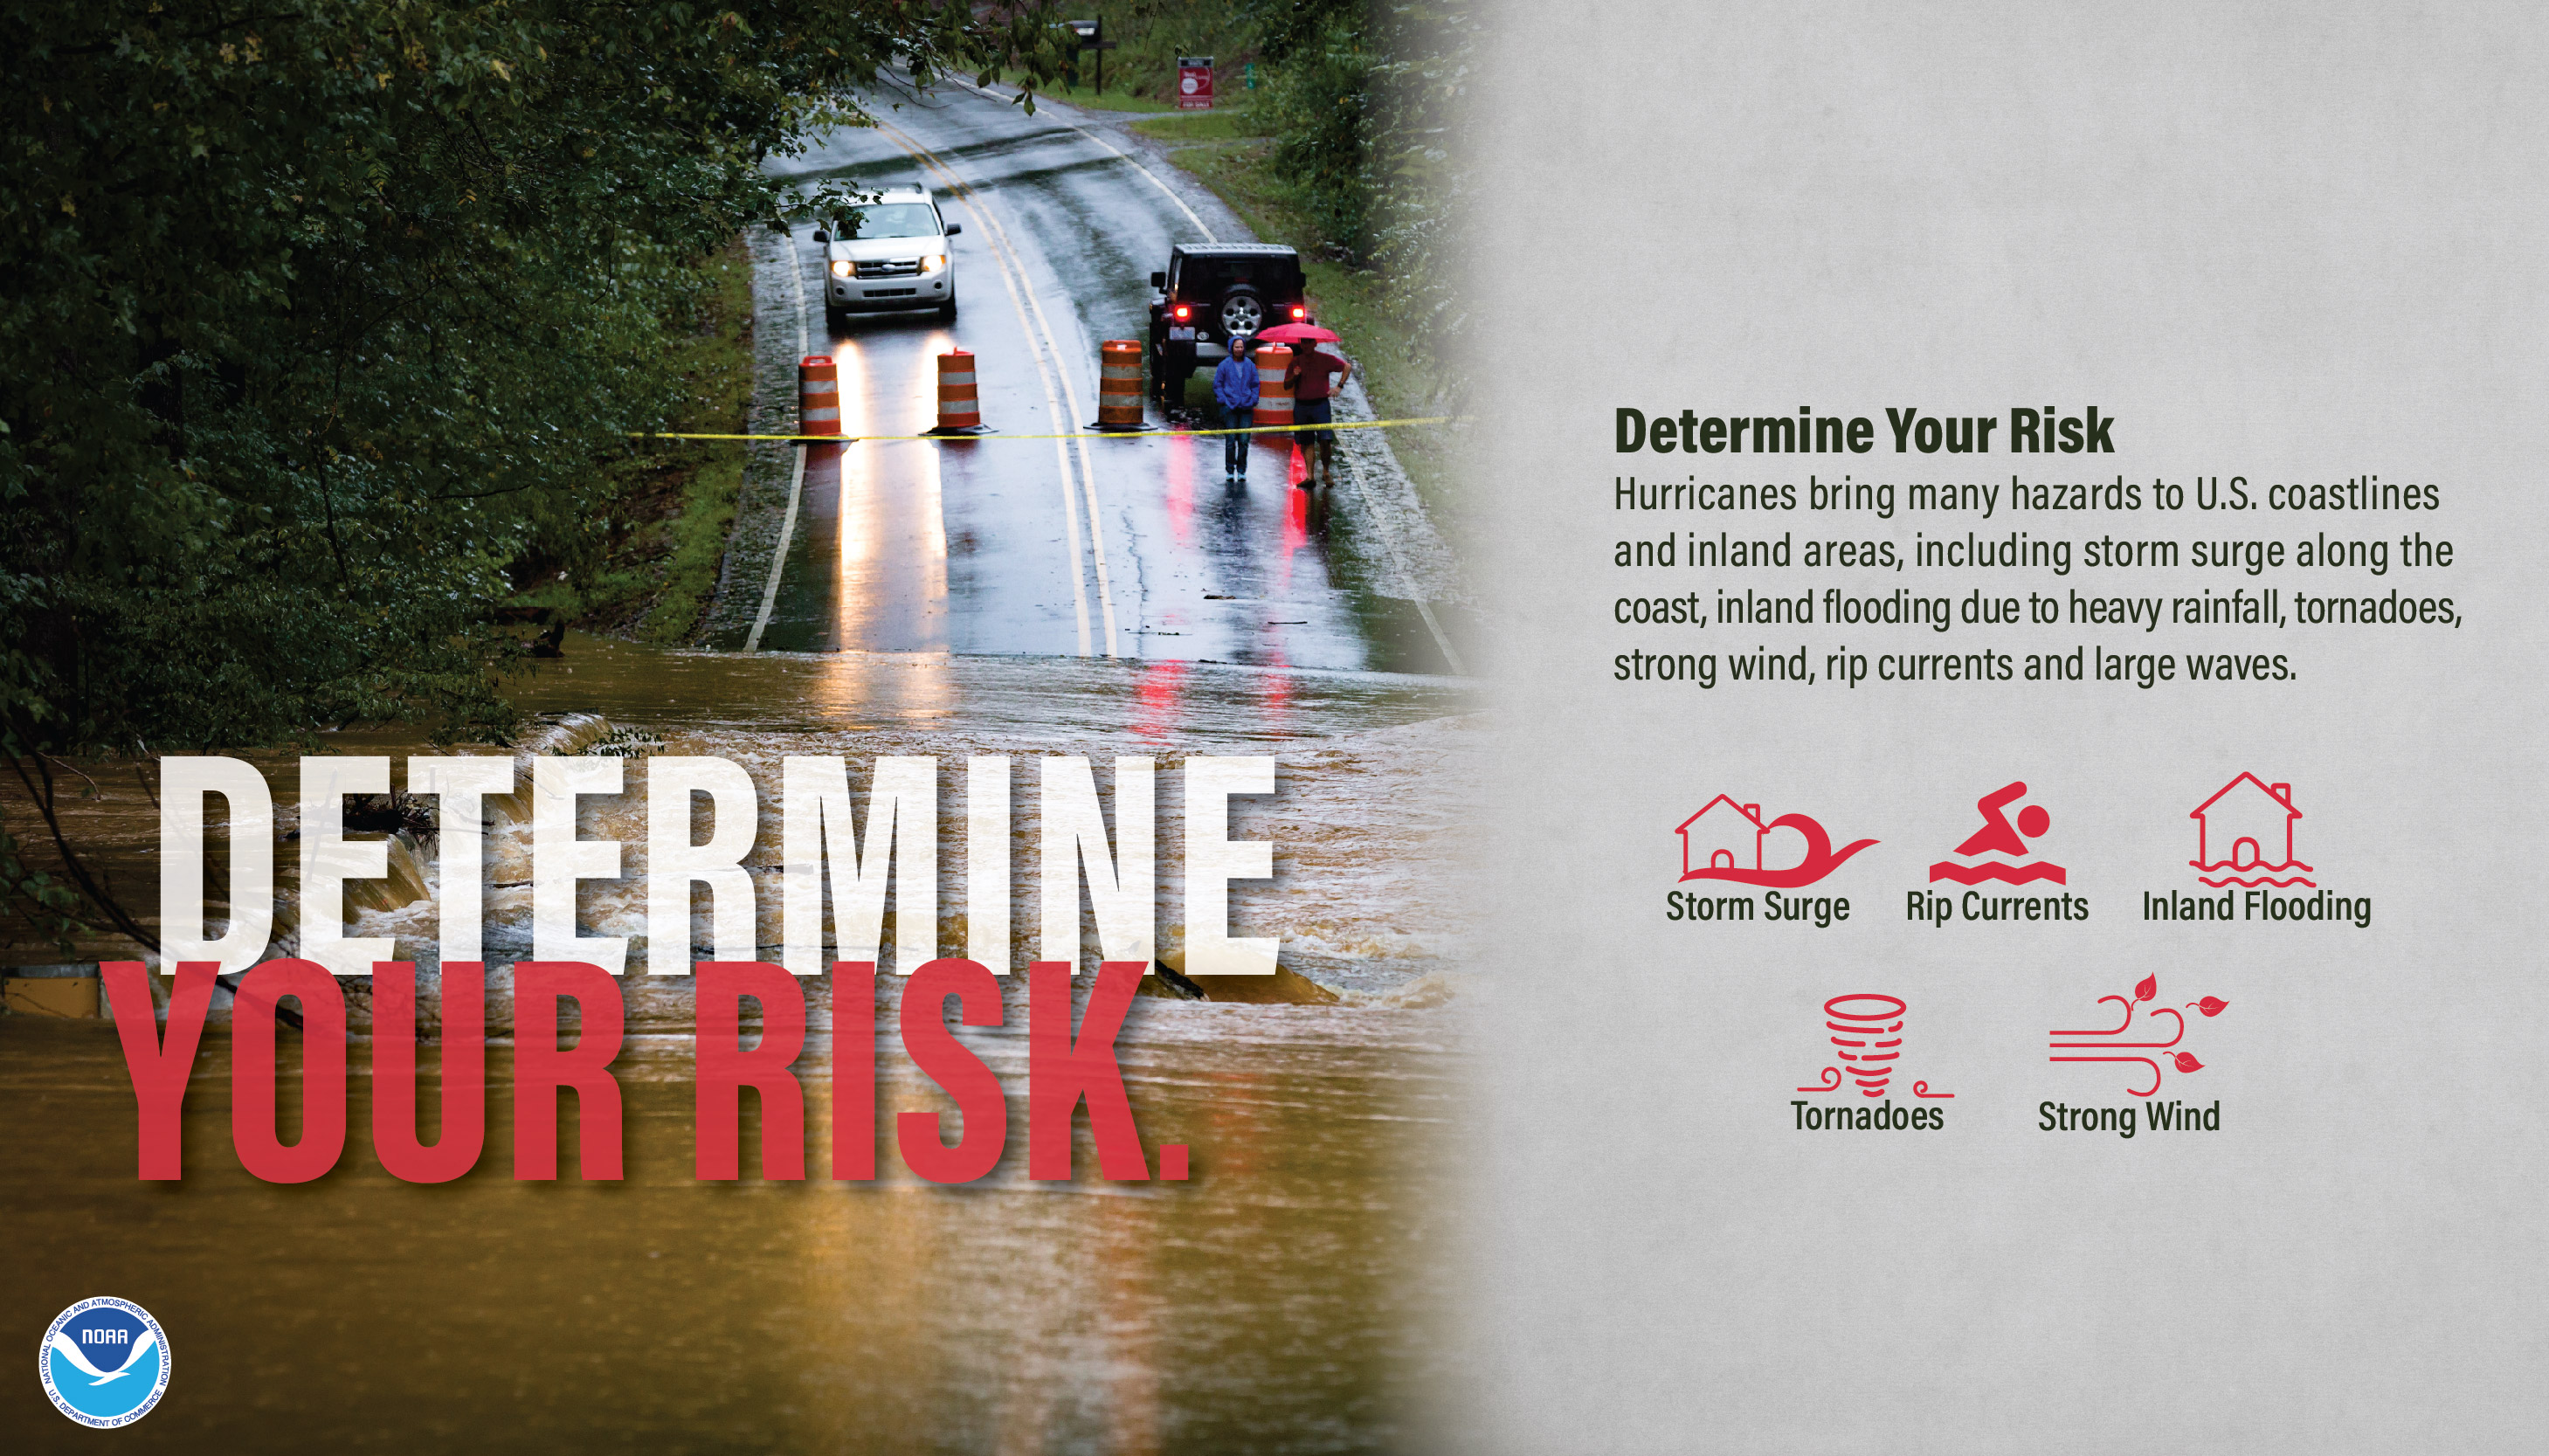 Determine Your Risk